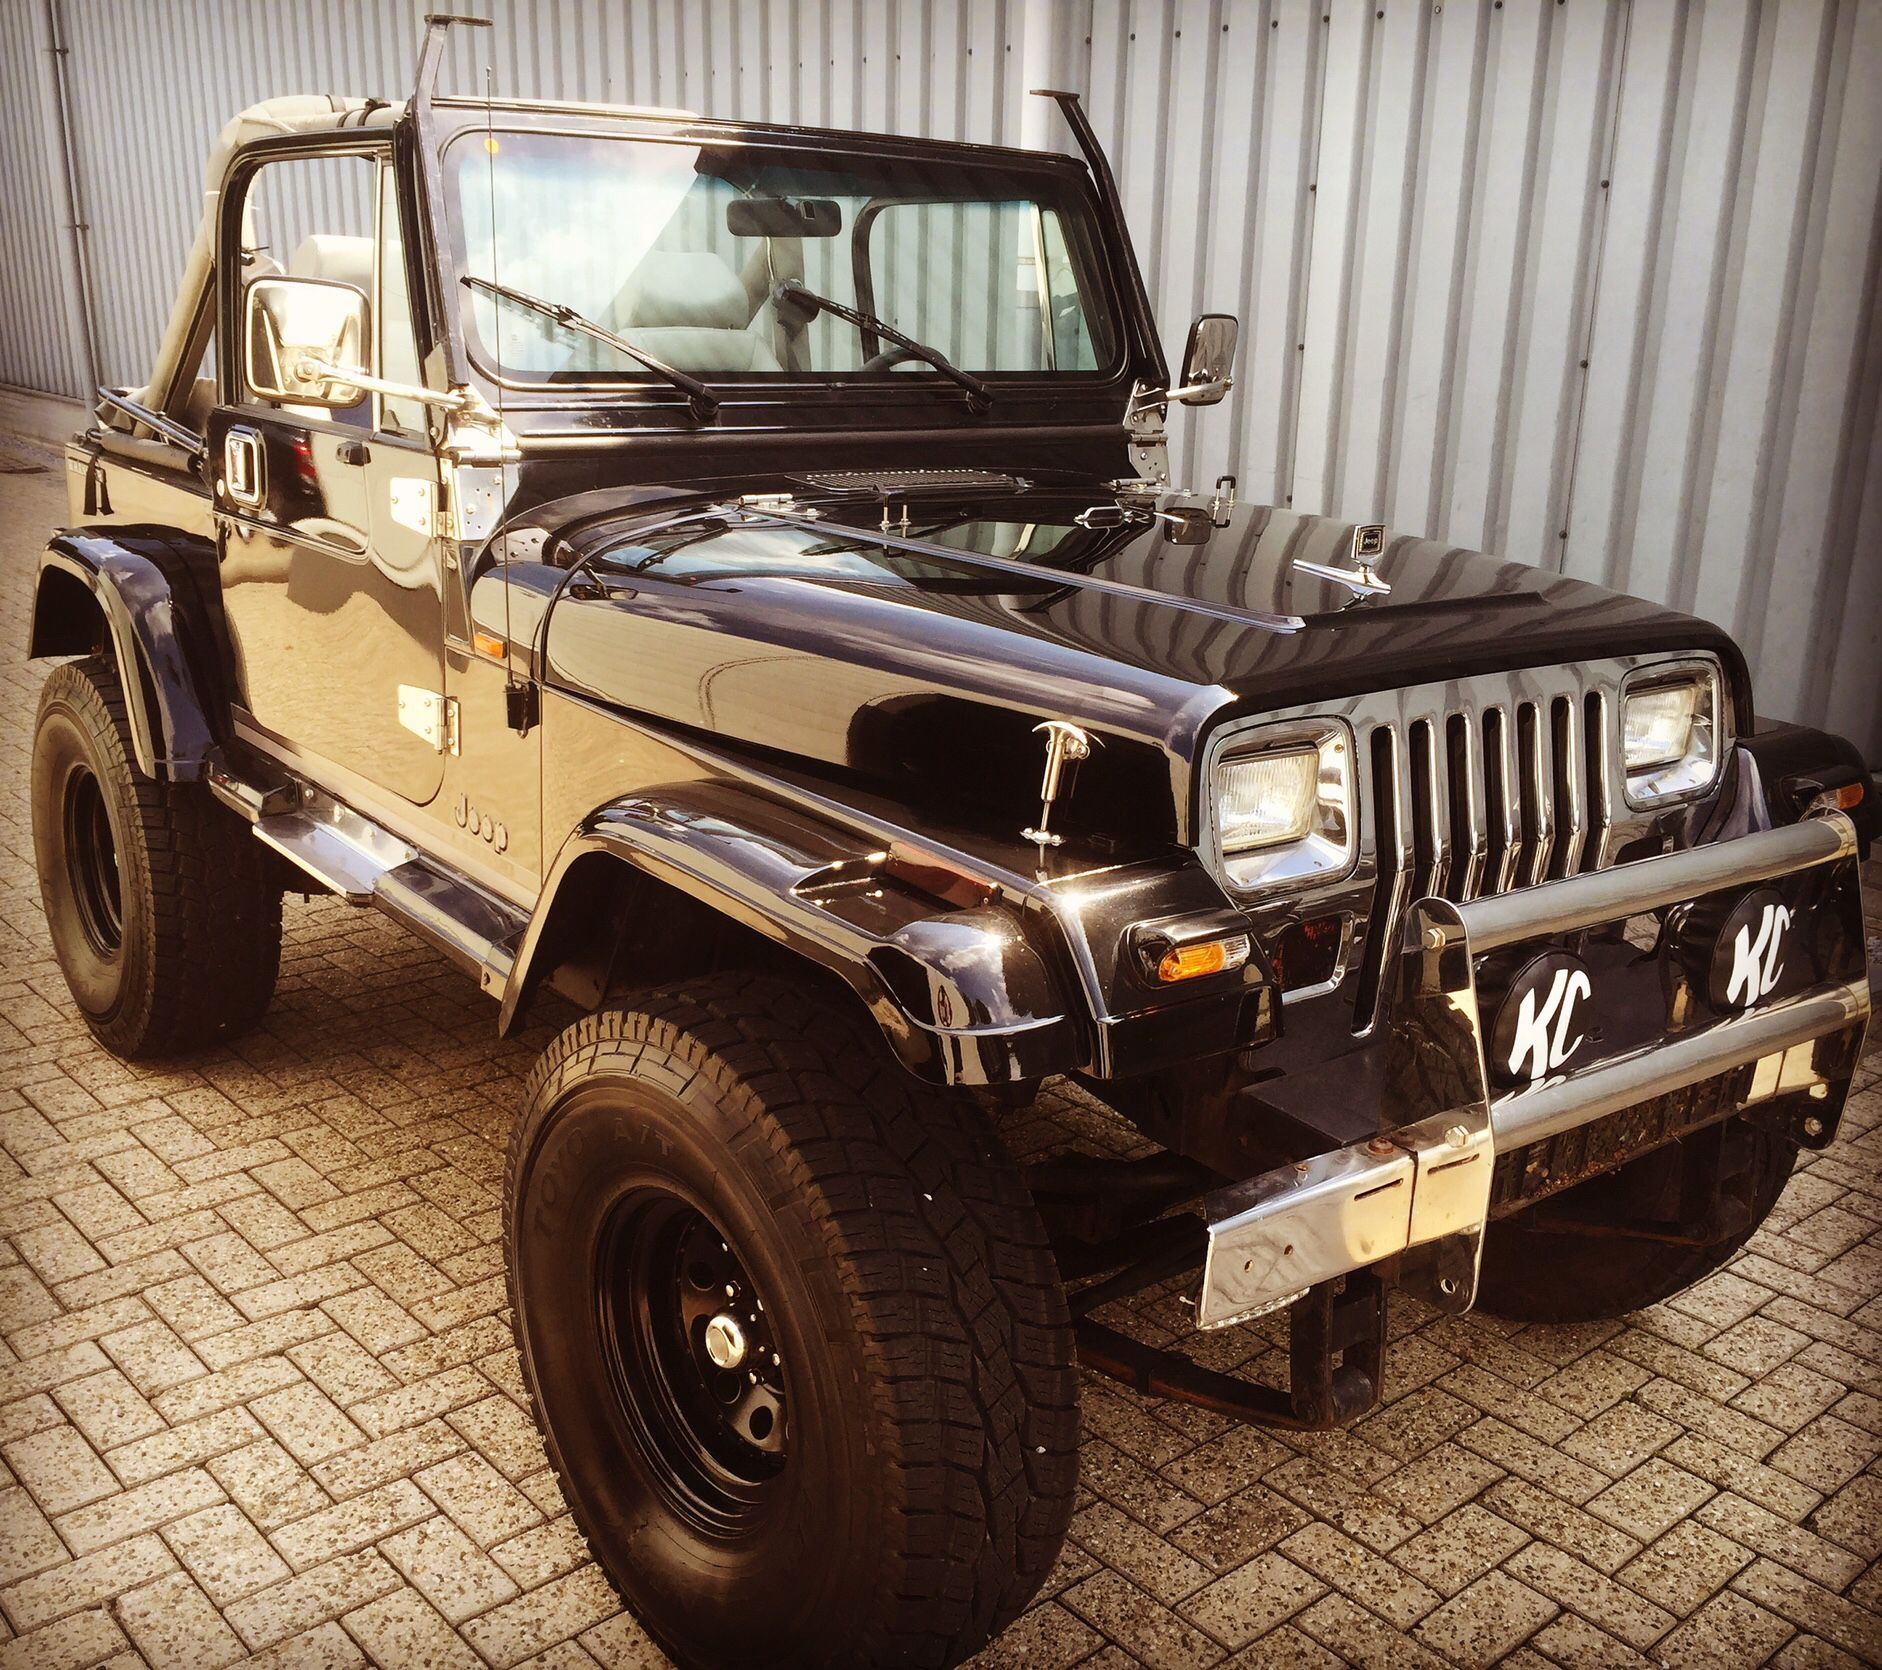 1990 Jeep Wrangler YJ Oh My Goodness Its Just BEAUTIFUL